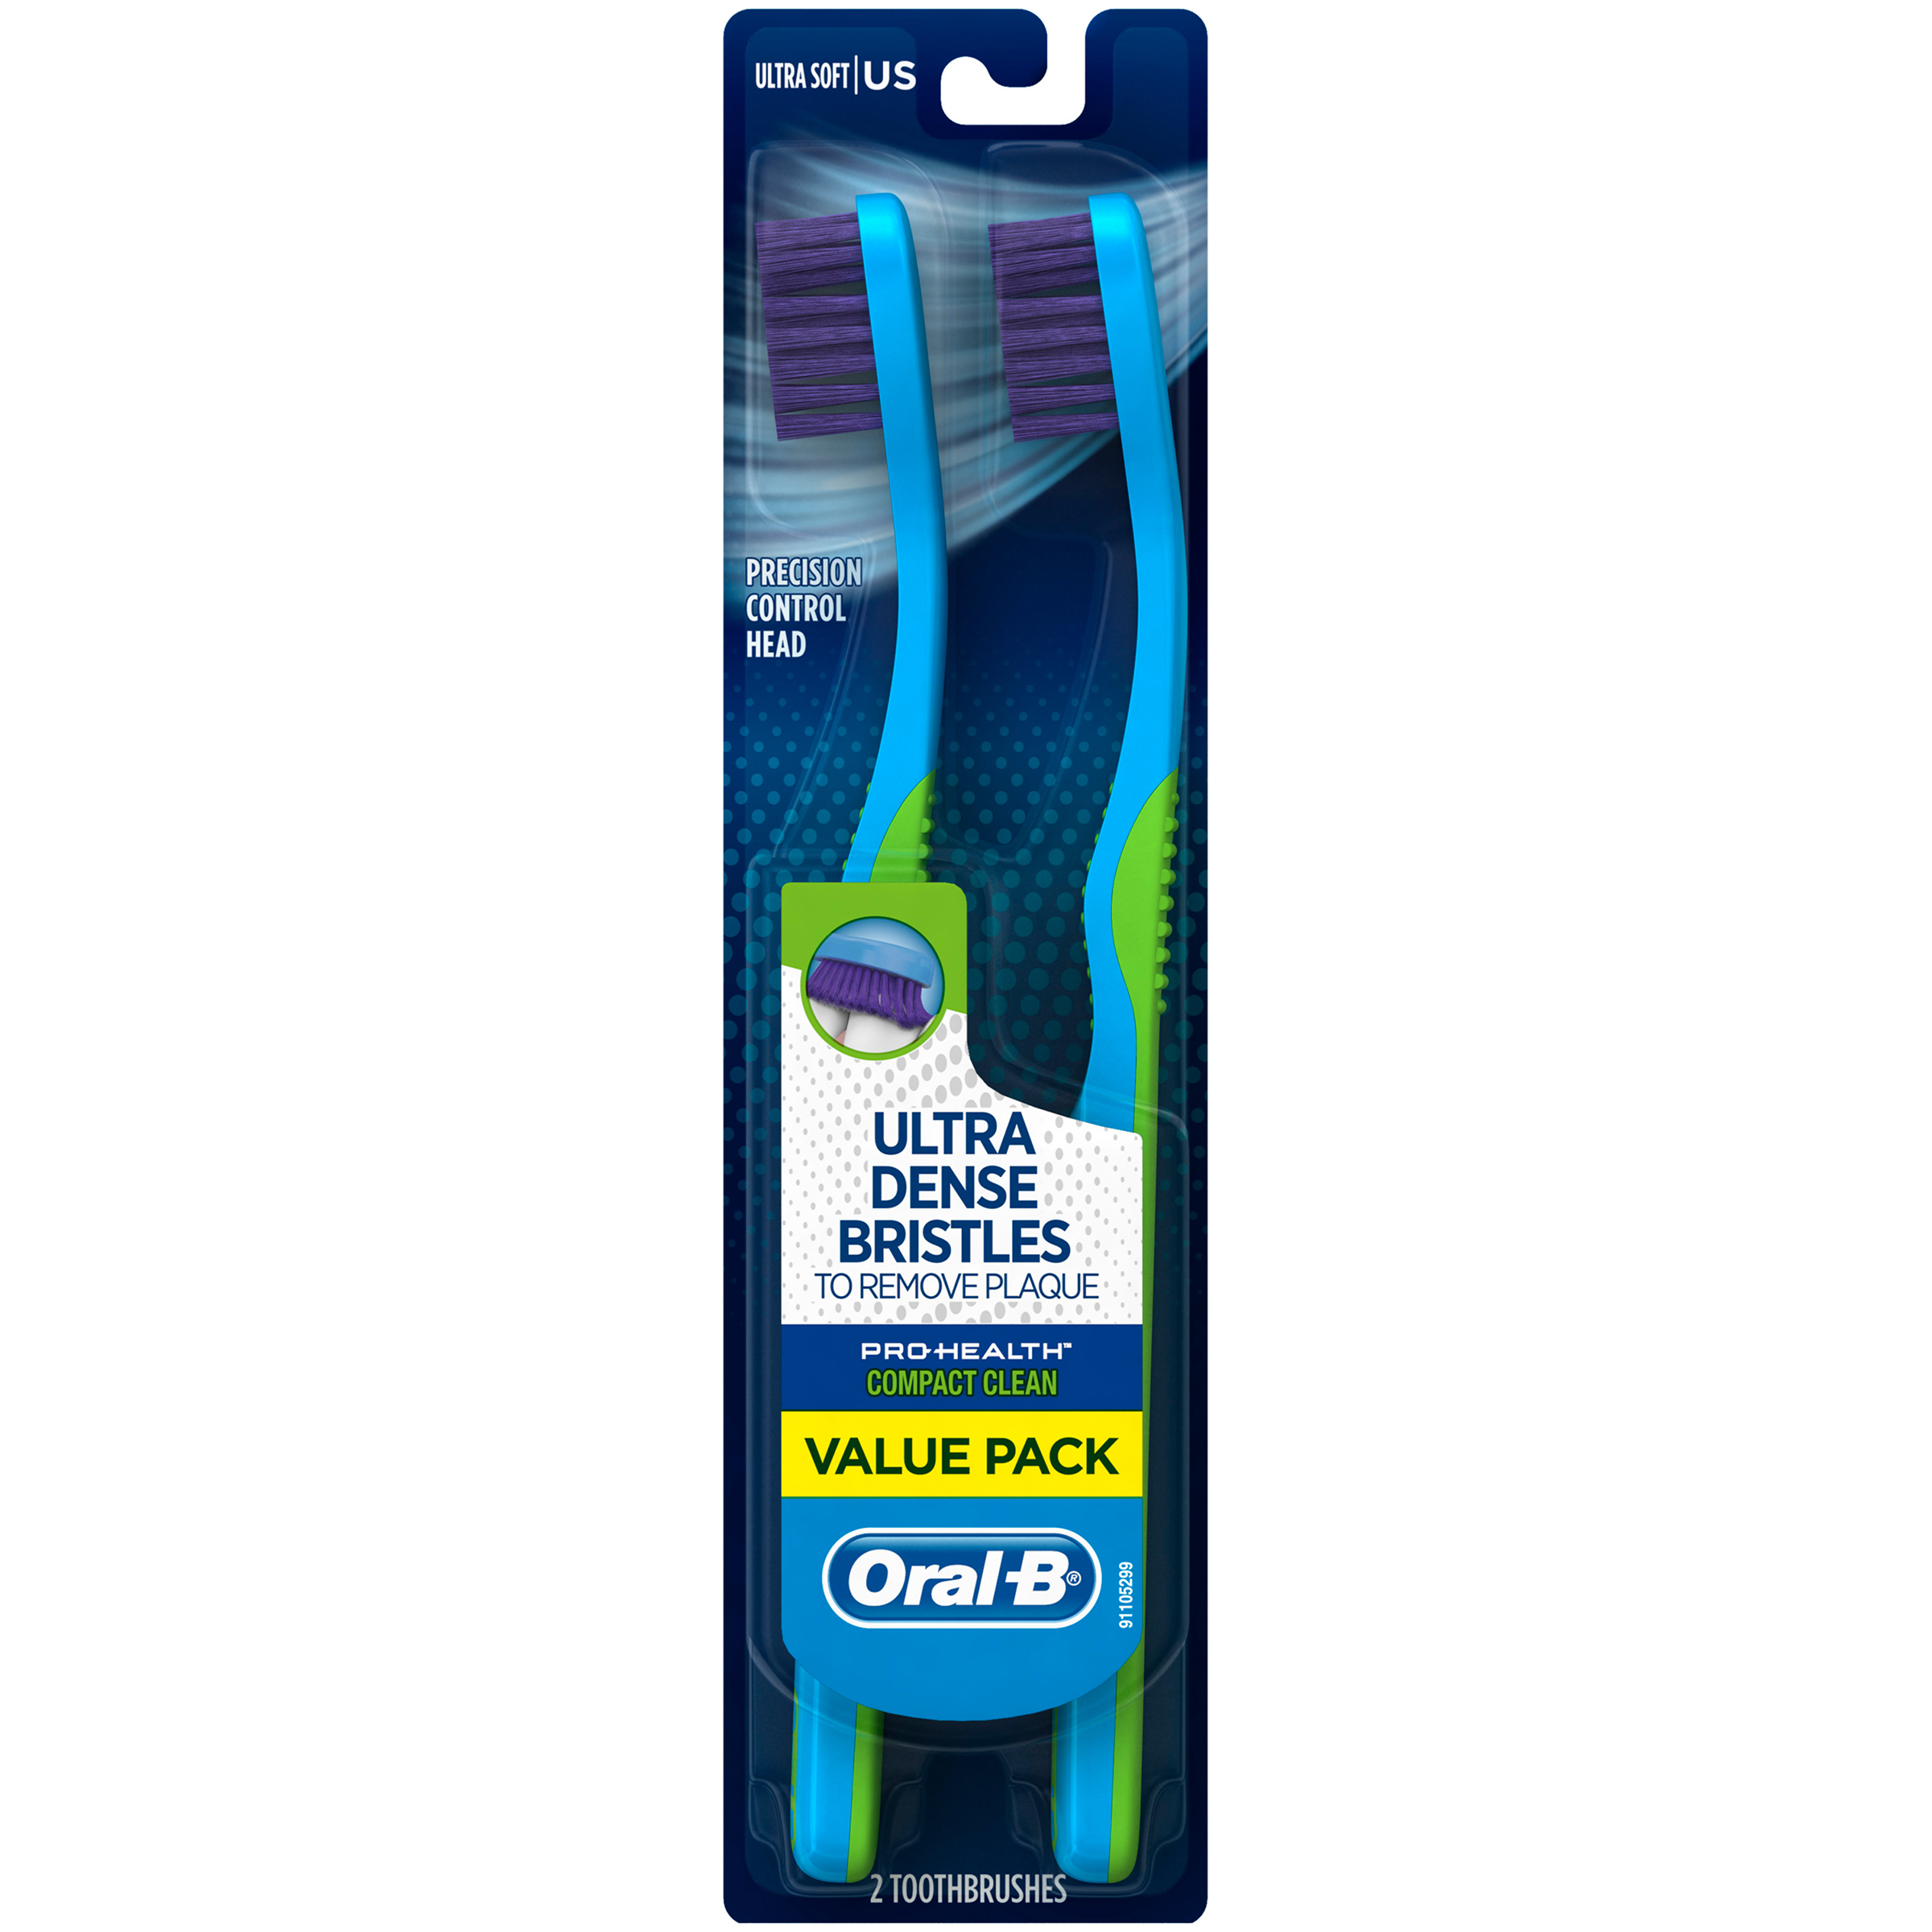 Oral-B Pro-Health Compact Clean Toothbrush, Ultra Soft, 2 count